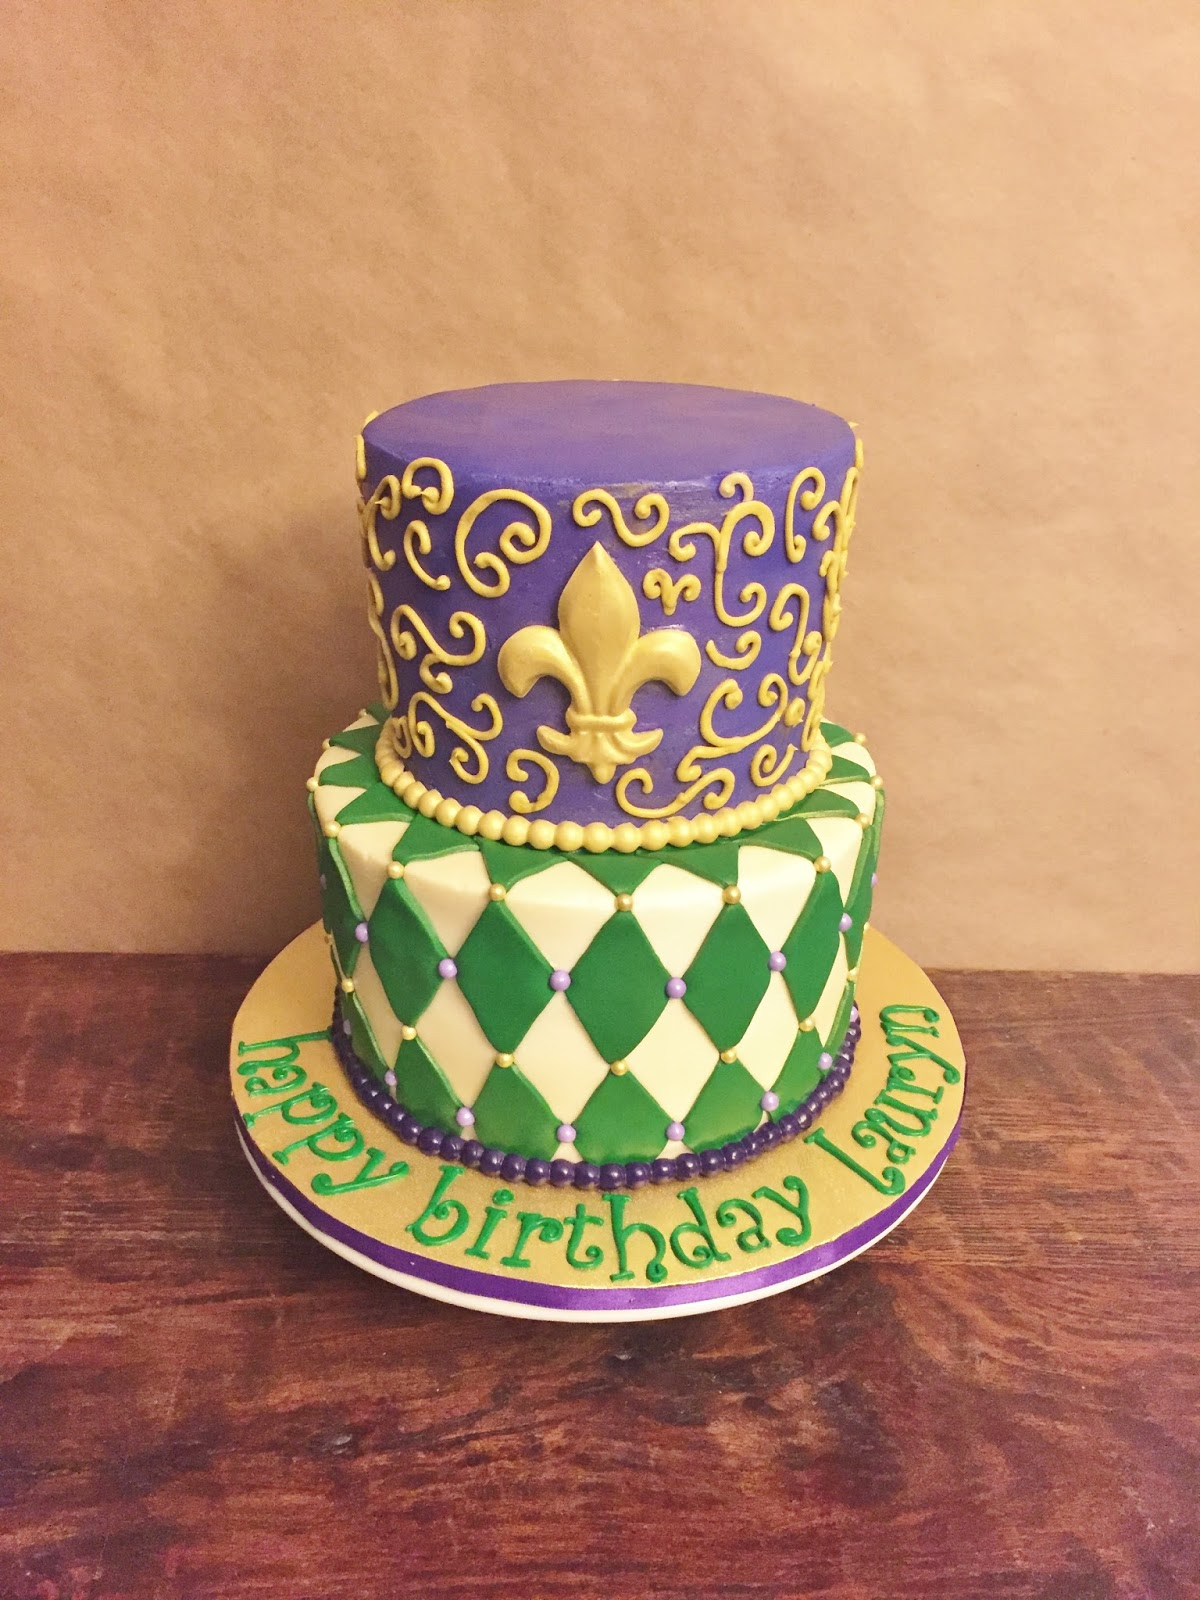 Cakes By Mindy Mardi Gras Birthday Cake 6 8